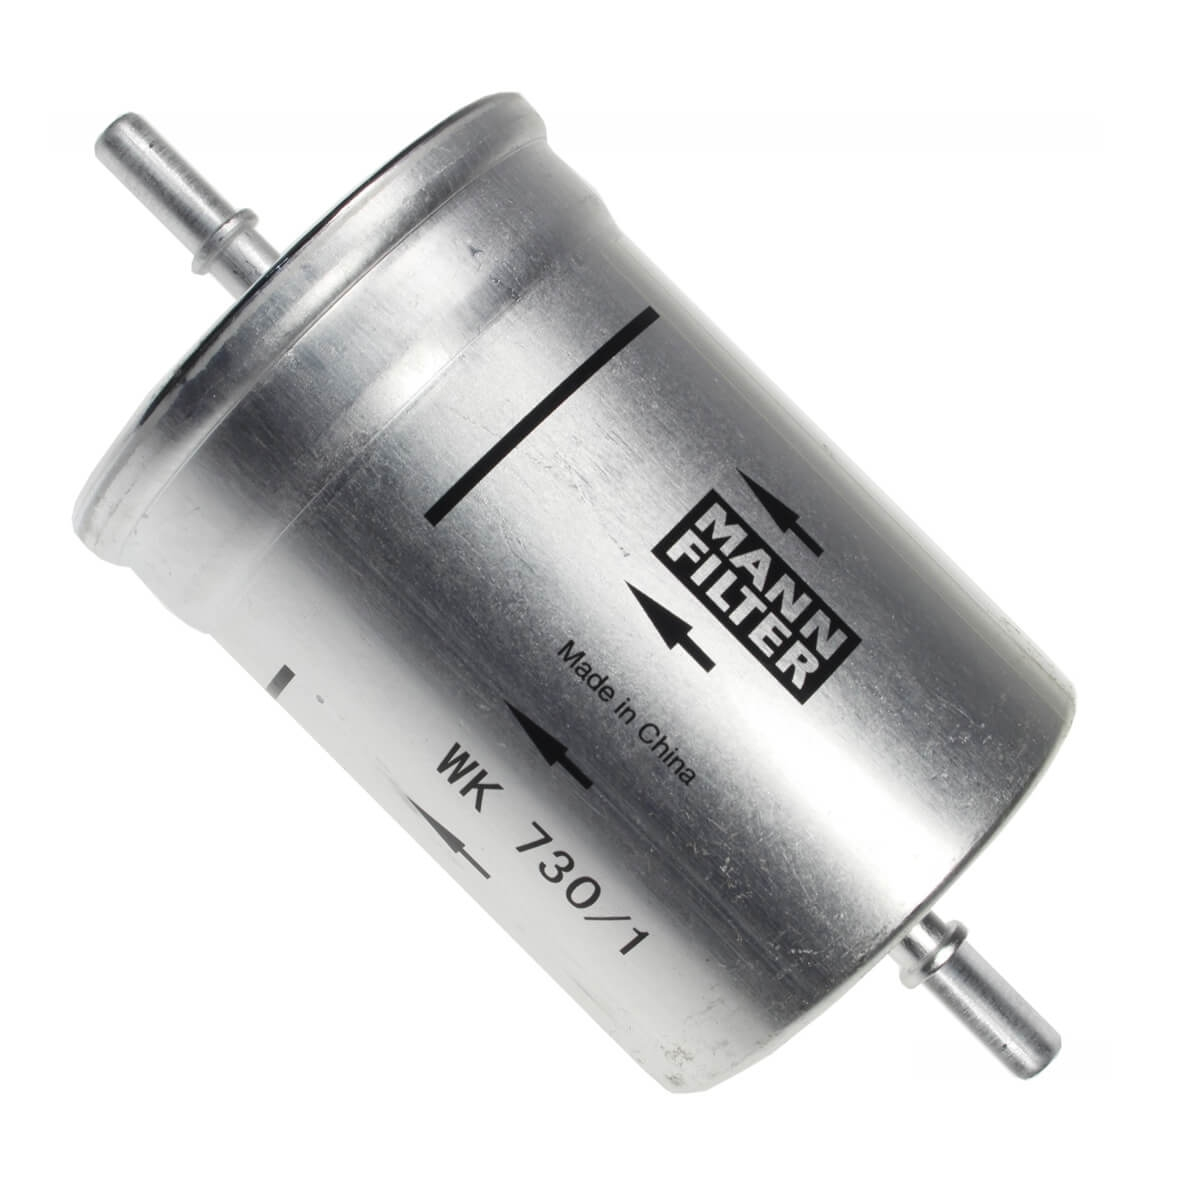 CADILLAC BLS Fuel Filters